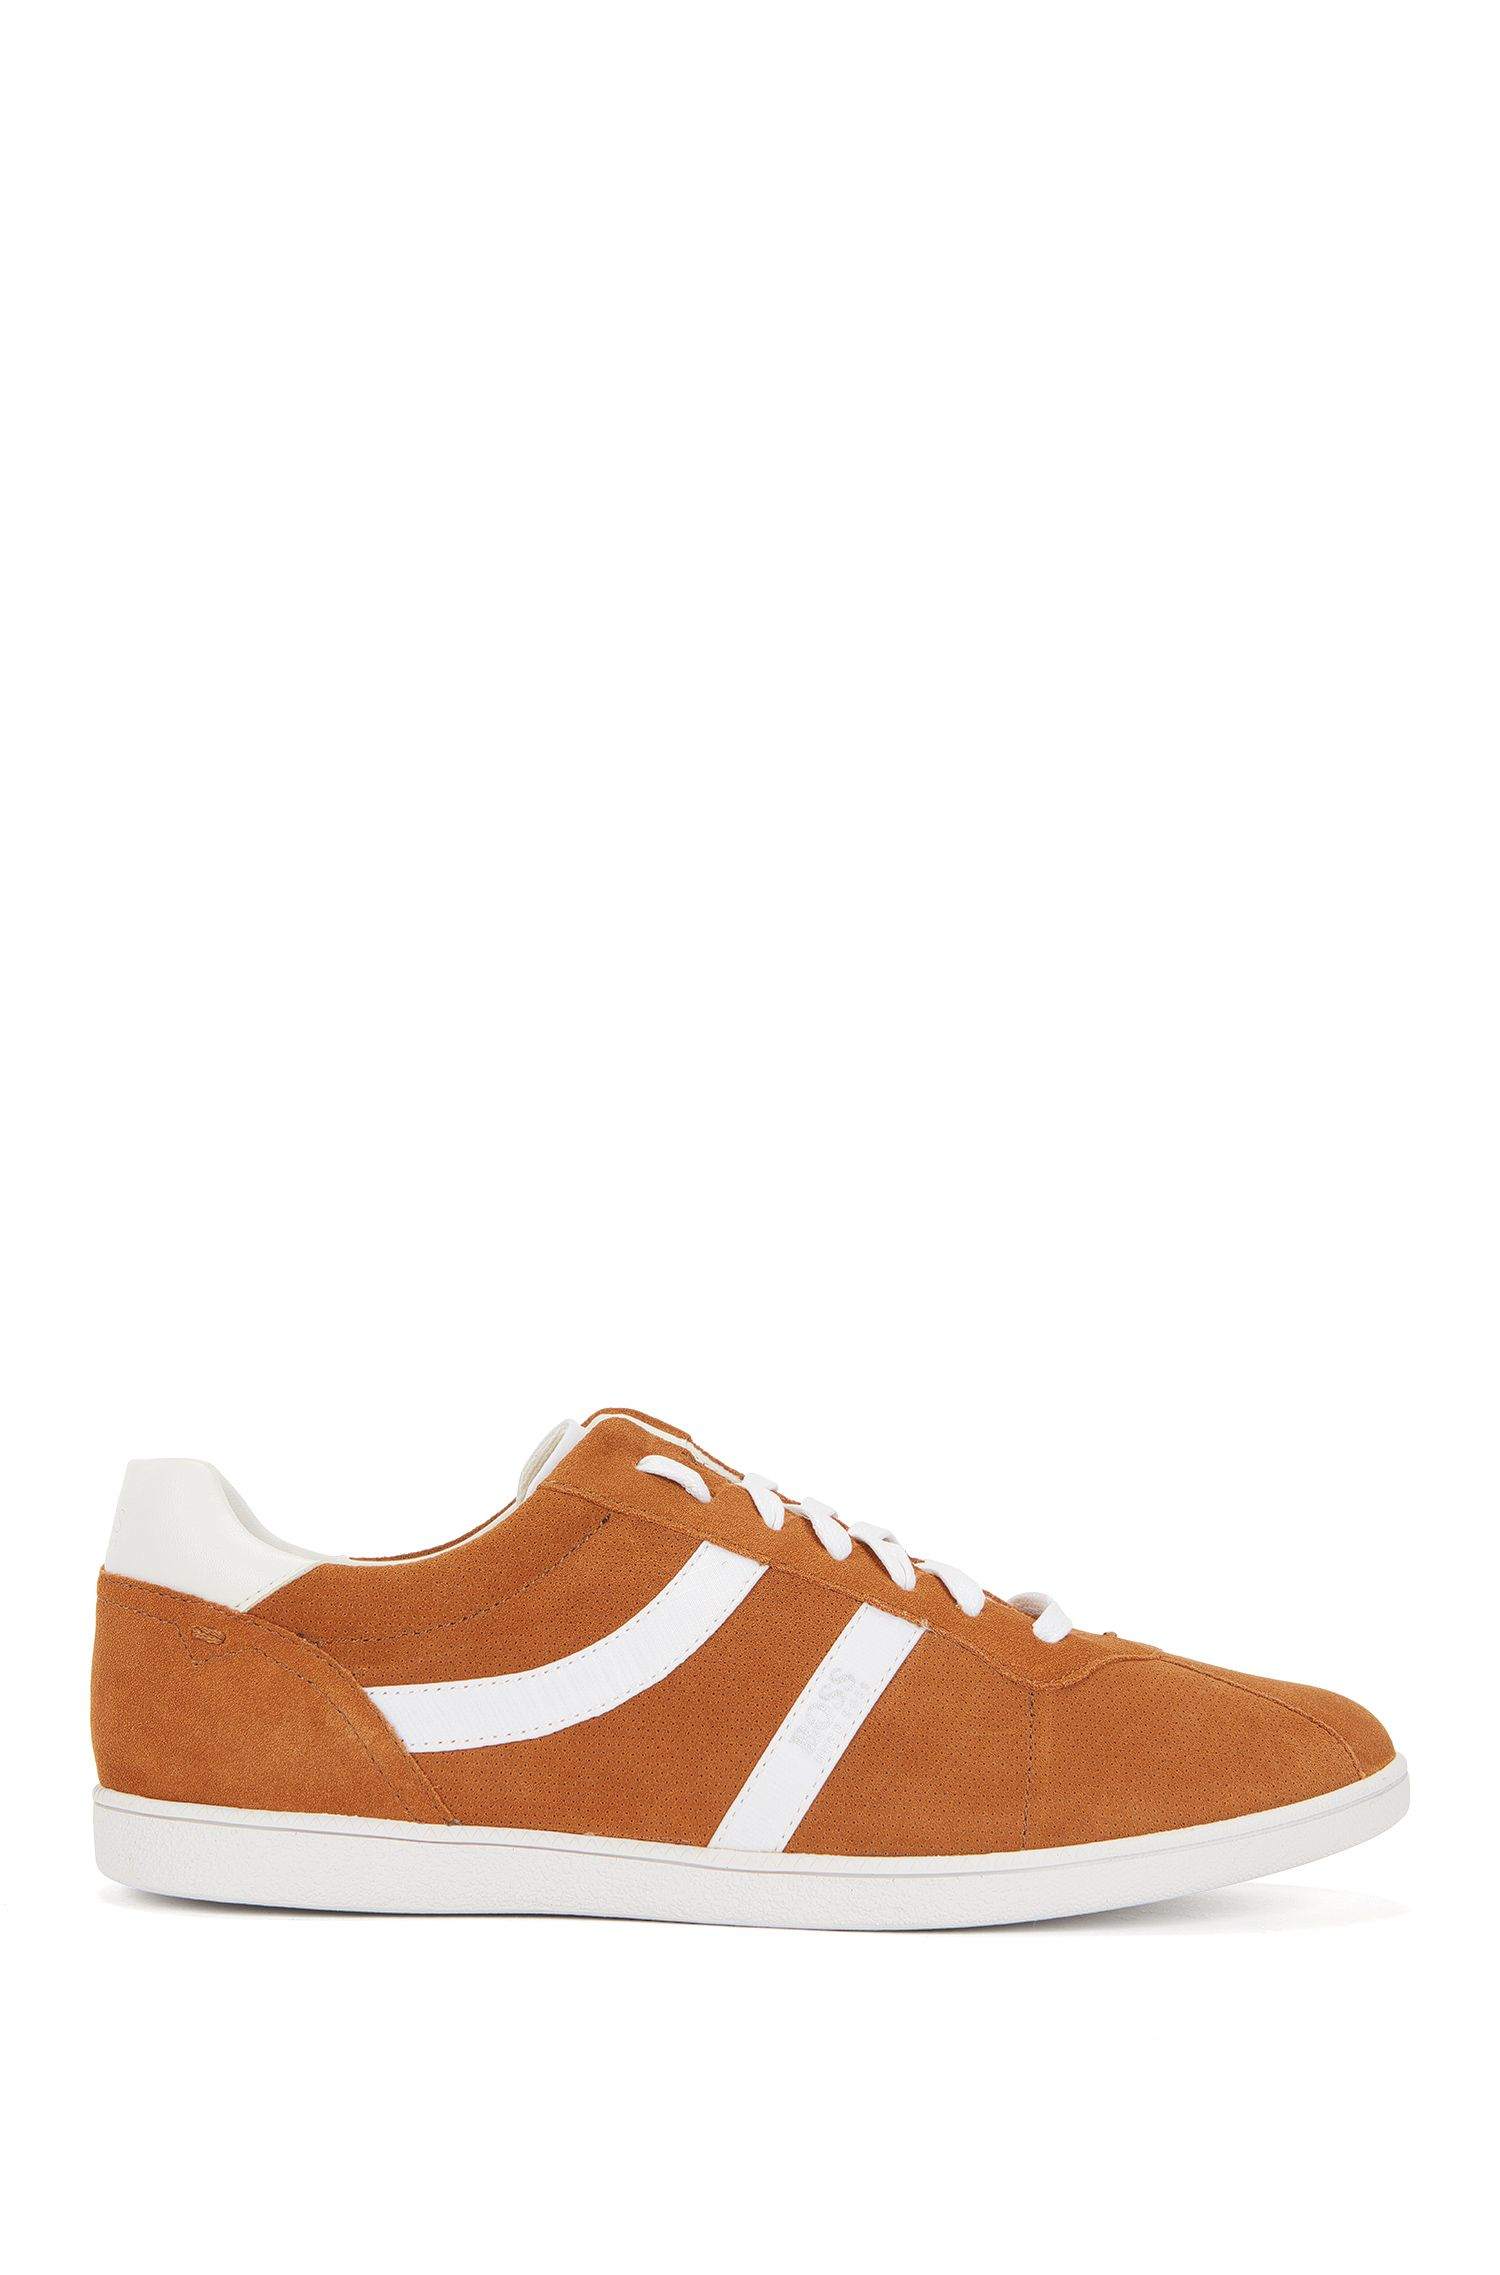 Sneakers low-top in pelle scamosciata liscia e traforata